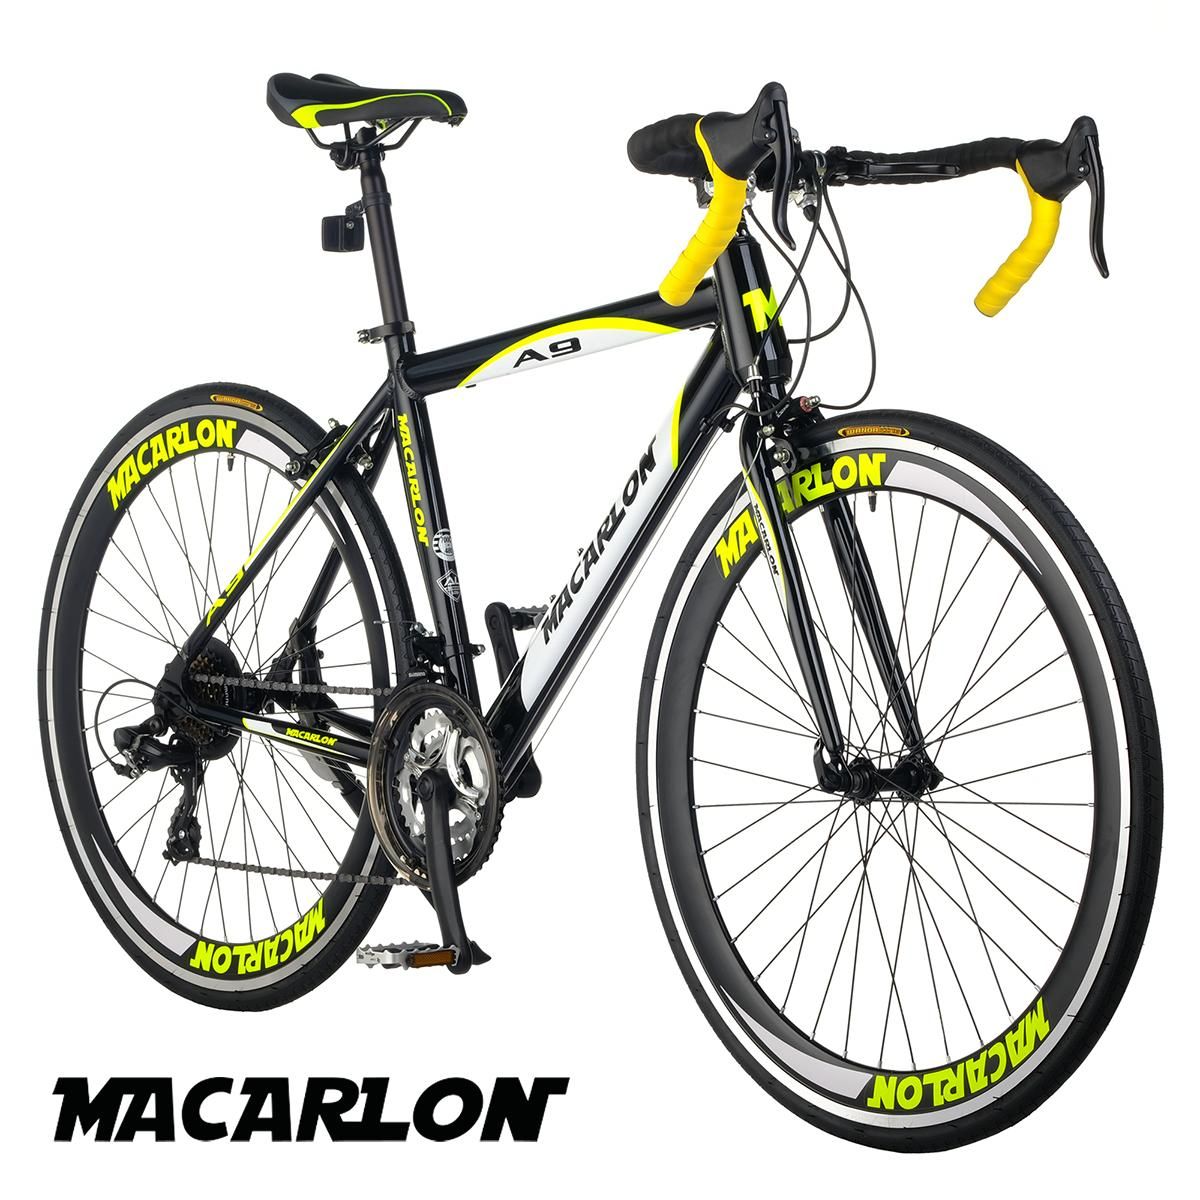 Bike Shop Sale Bike For Sale Bicycle Online Brands Prices And Reviews In